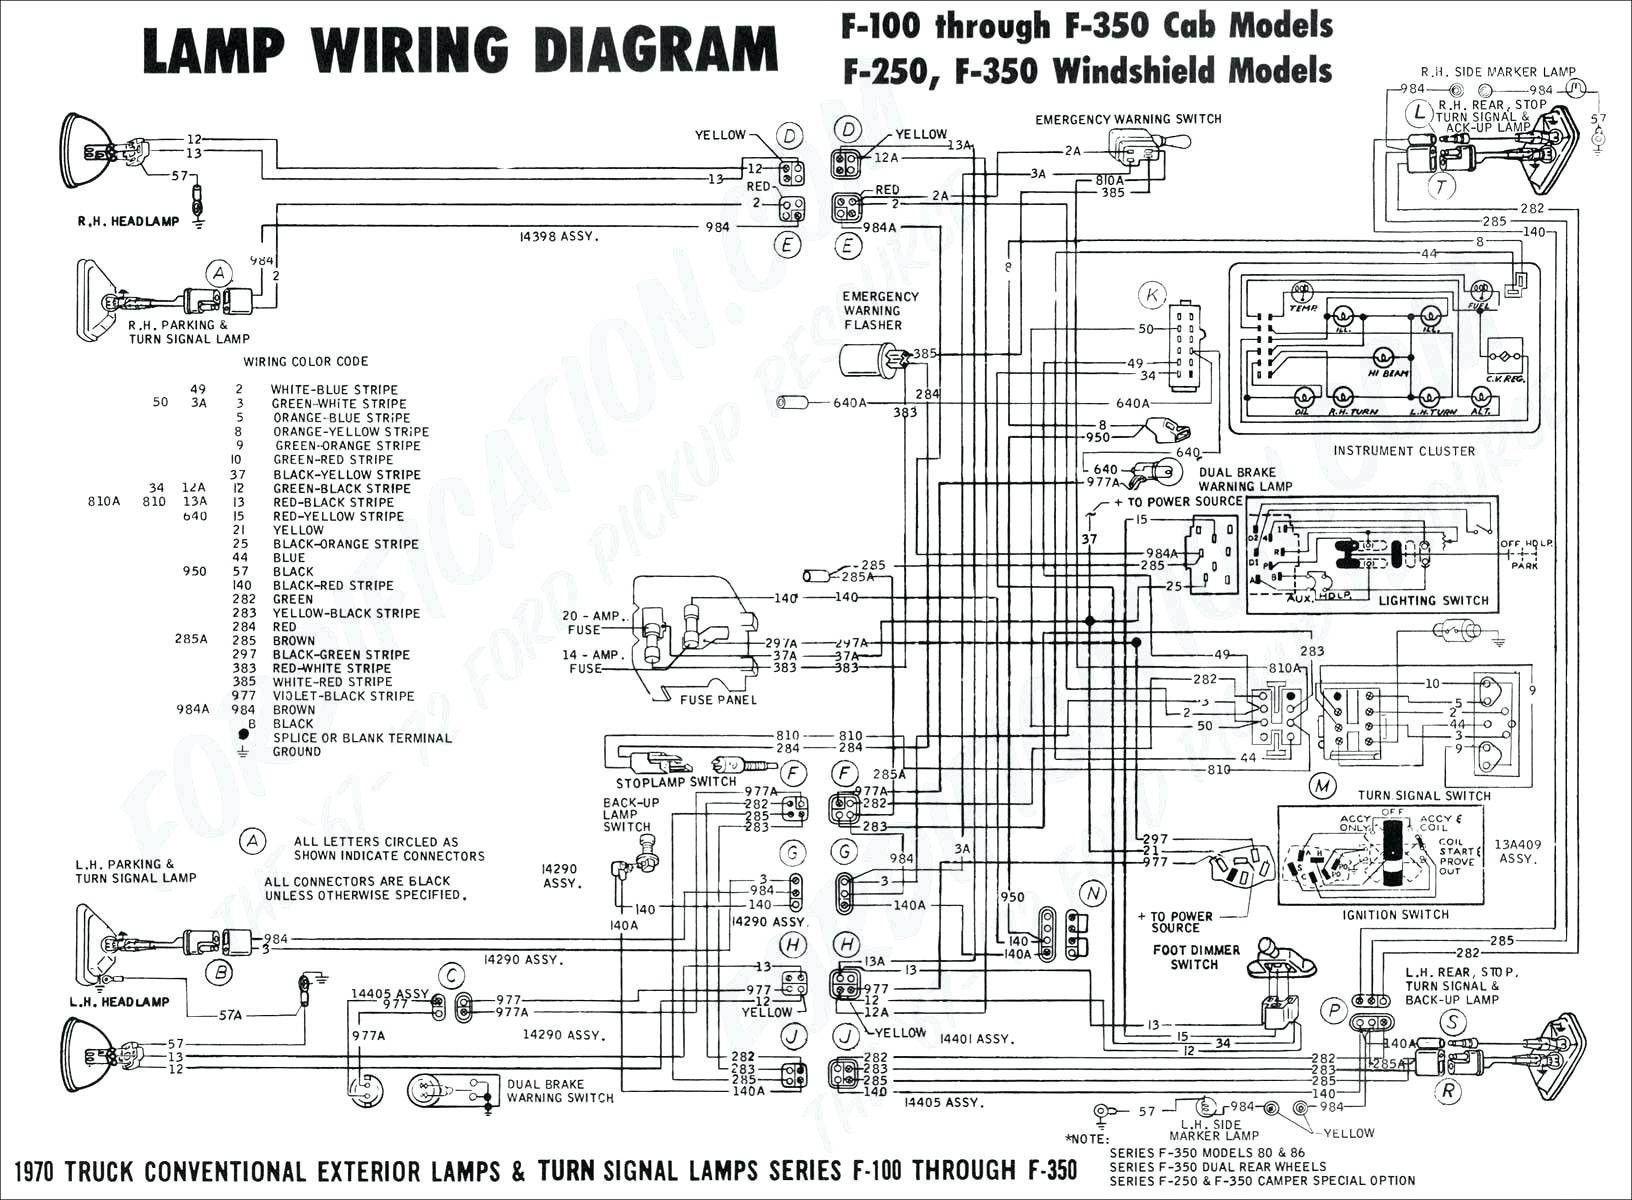 Autometer Shift Light Wiring Diagram Autometer Tach Wiring Diagram Autometer Tach Wiring Diagram with